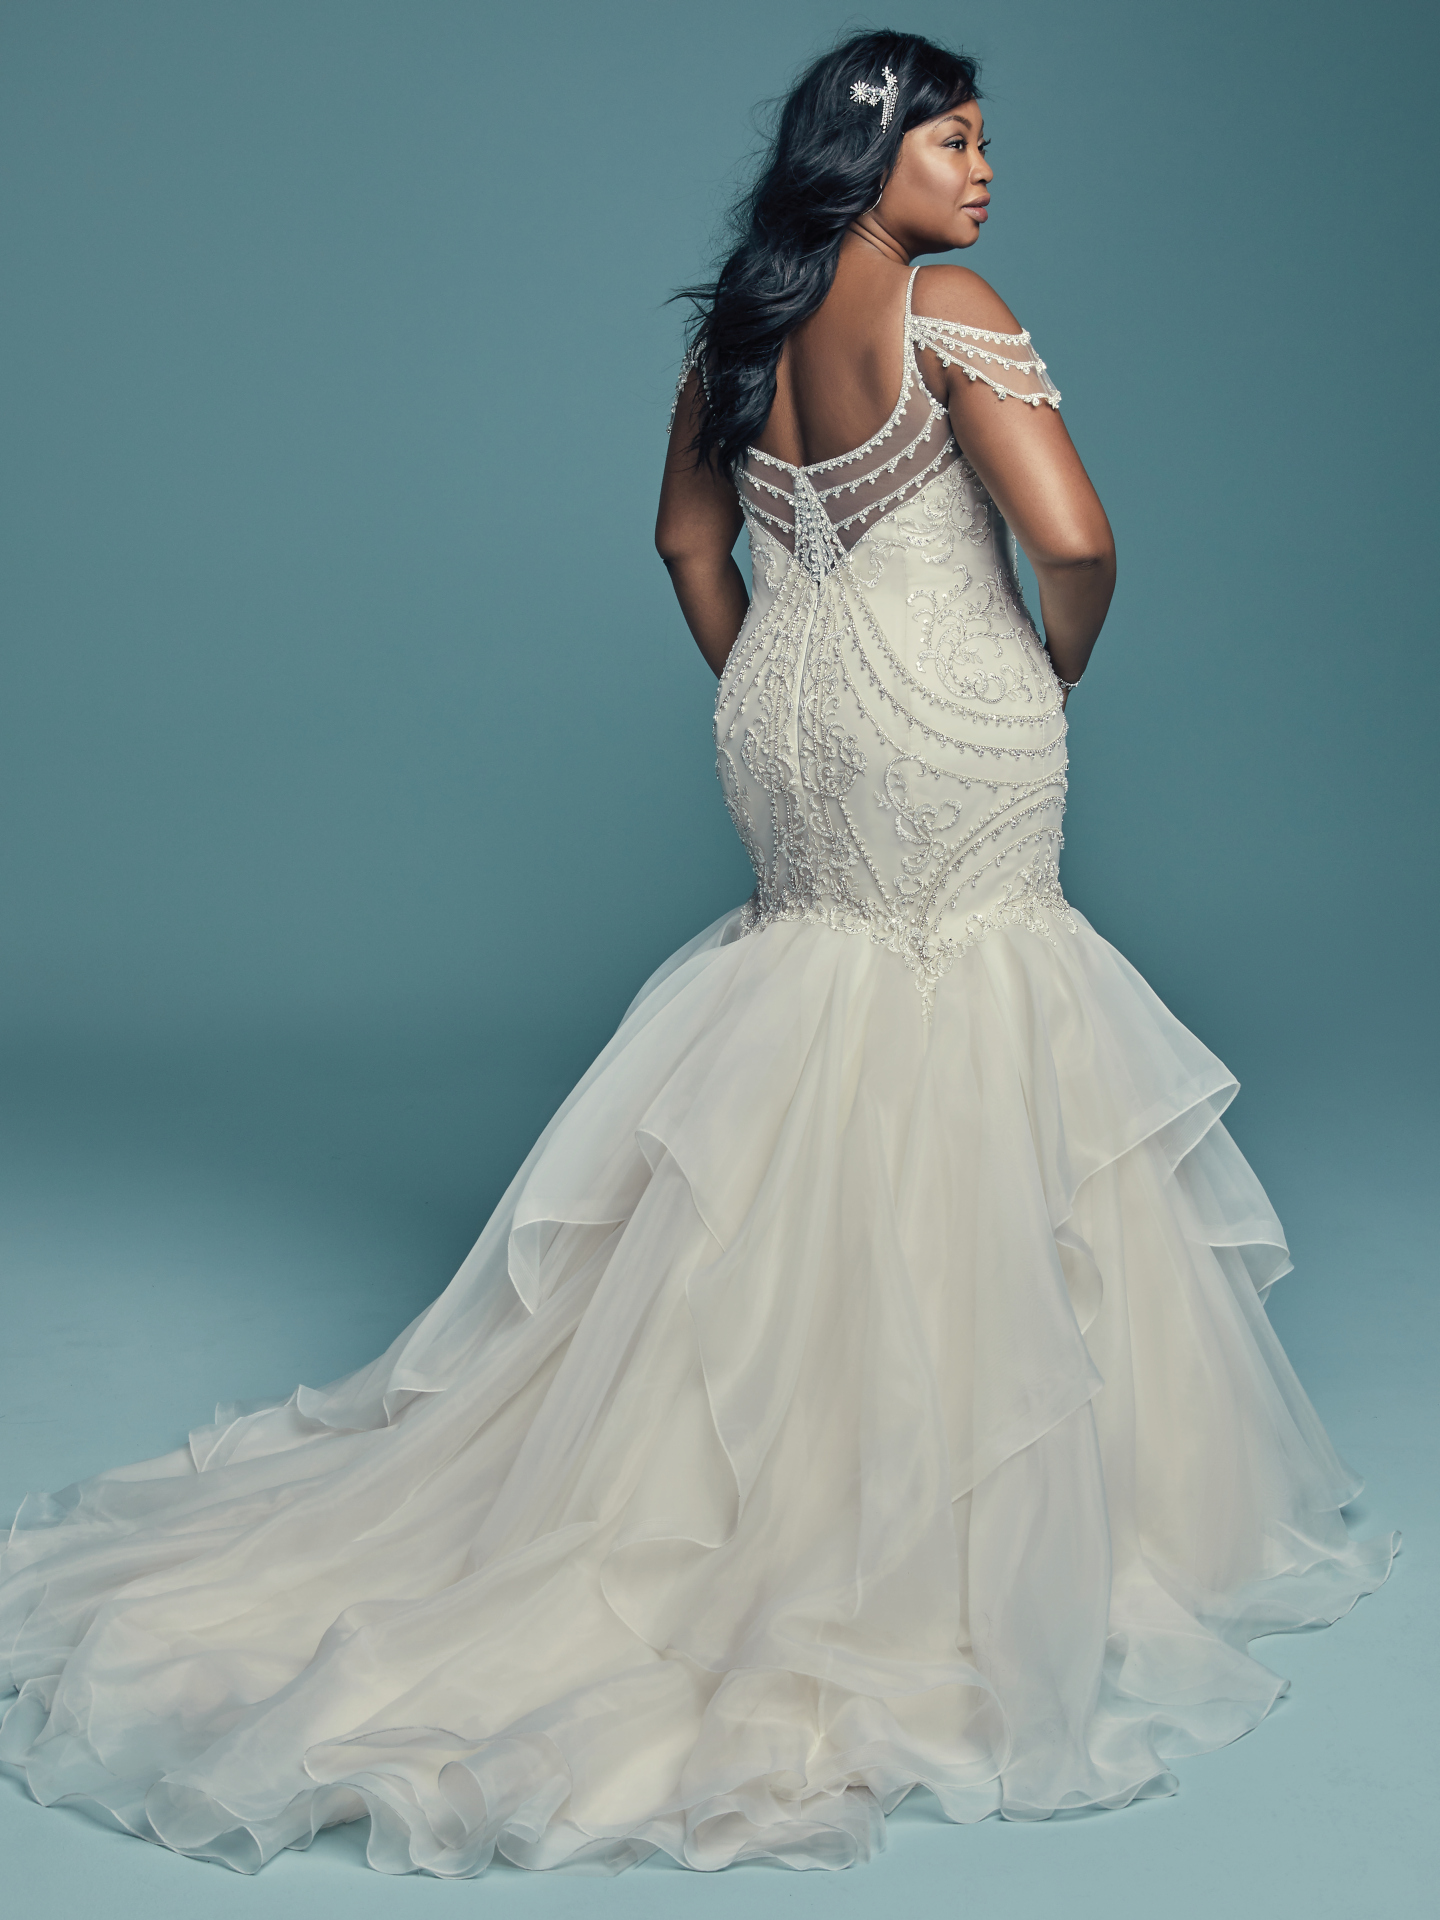 Flattering Wedding Dresses for Curvy Brides : Love Maggie